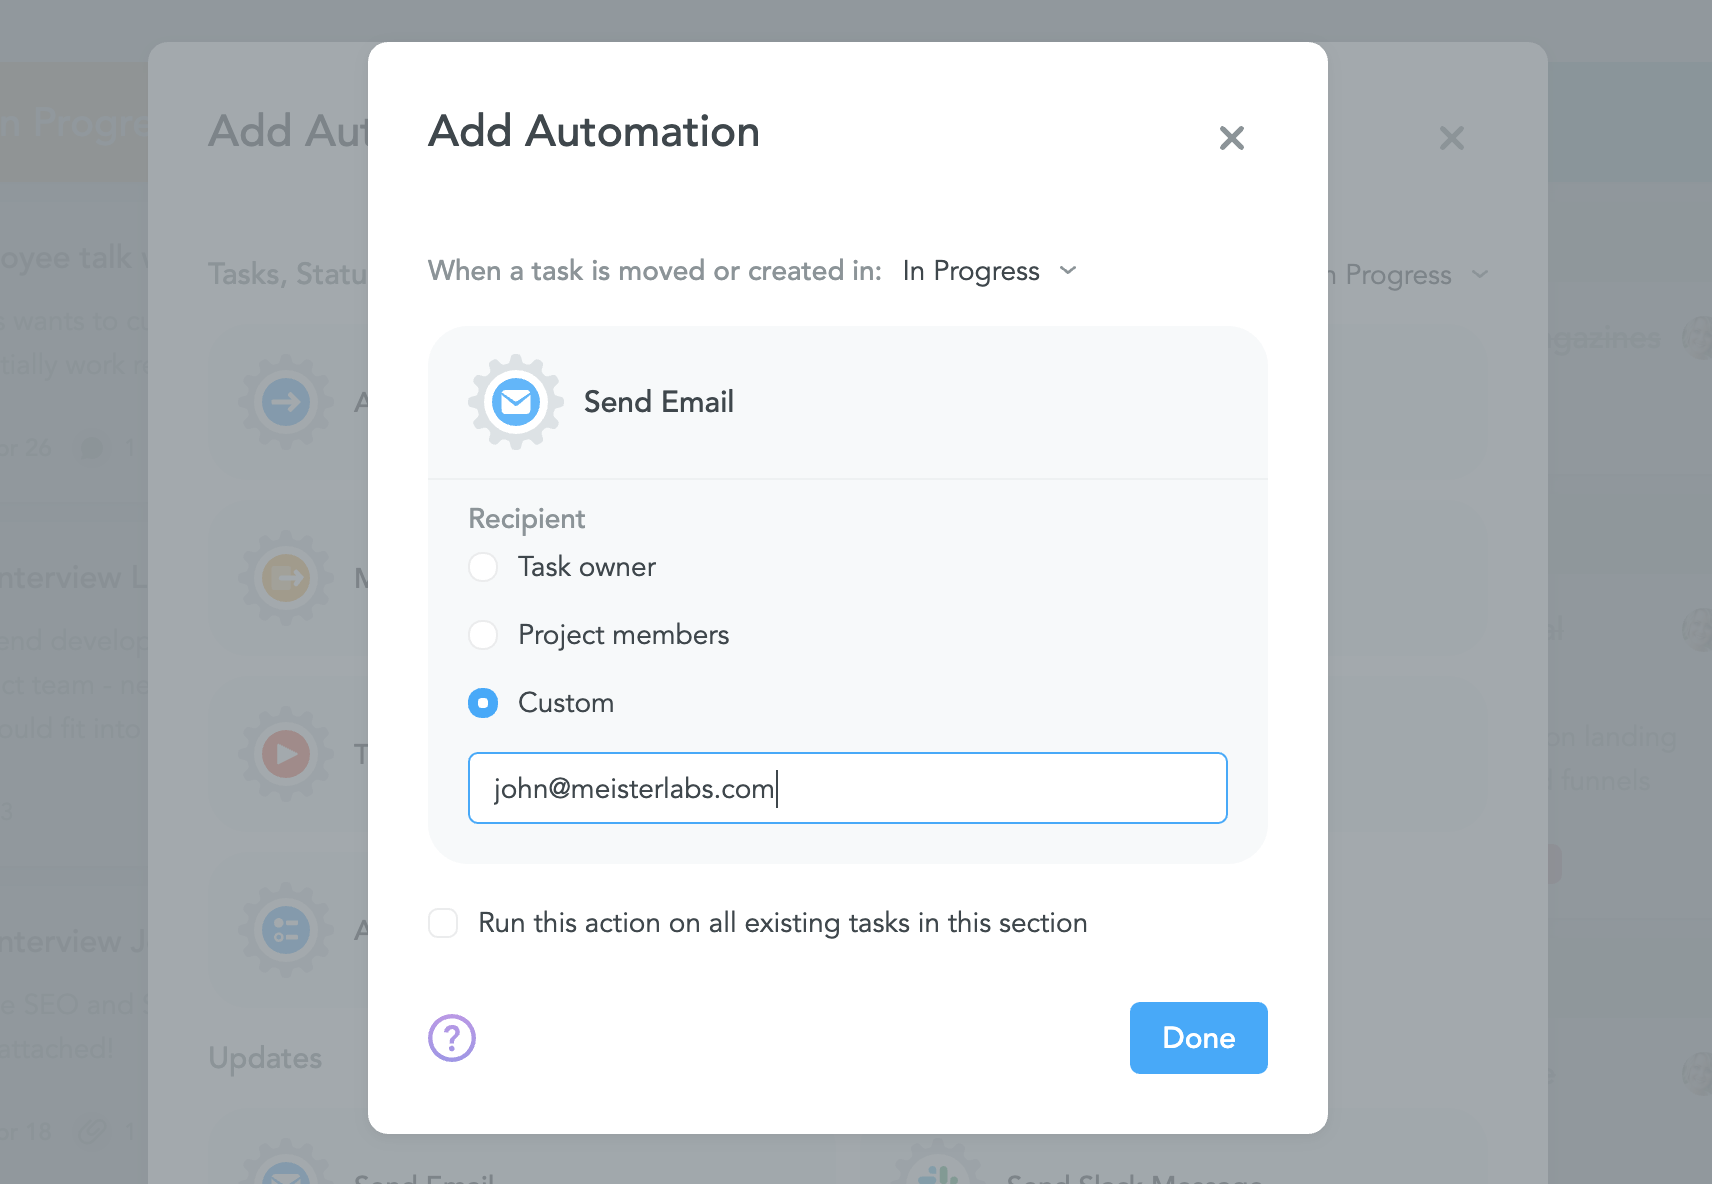 Adding an email automation in MeisterTask